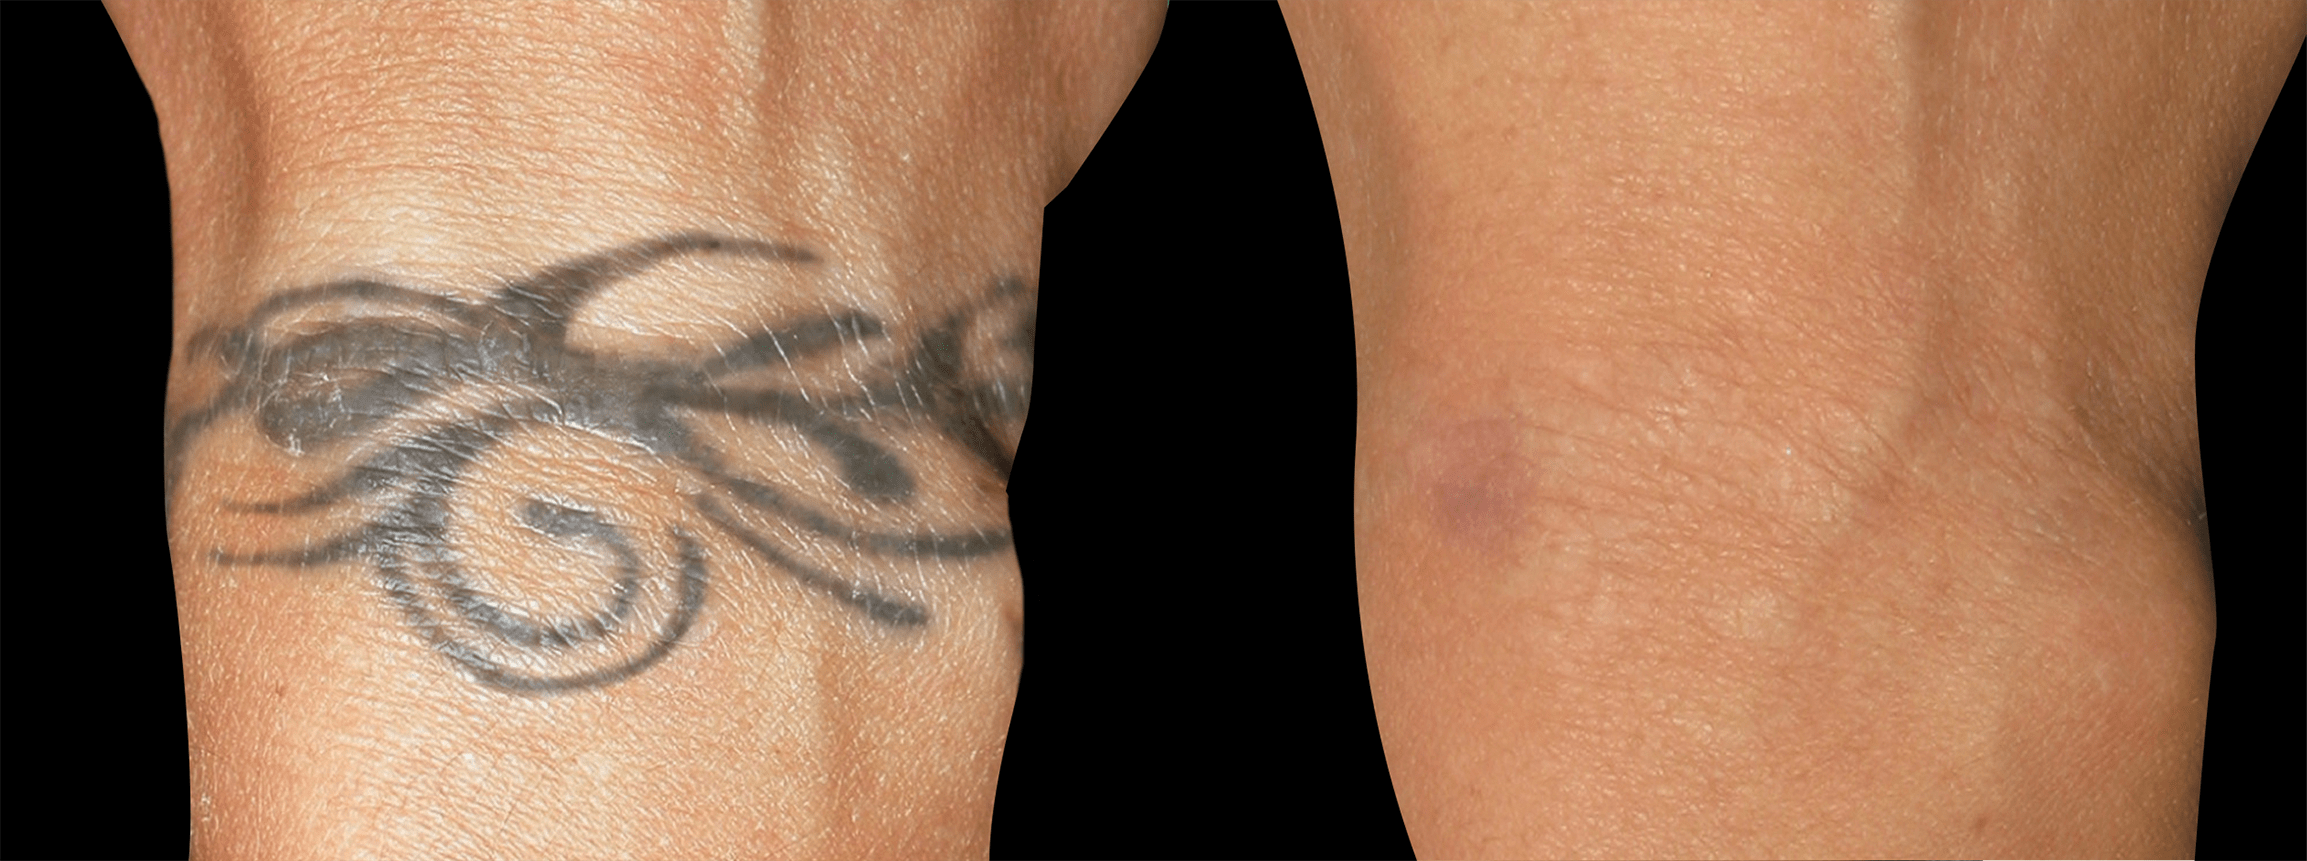 Long Island tattoo removal before and after